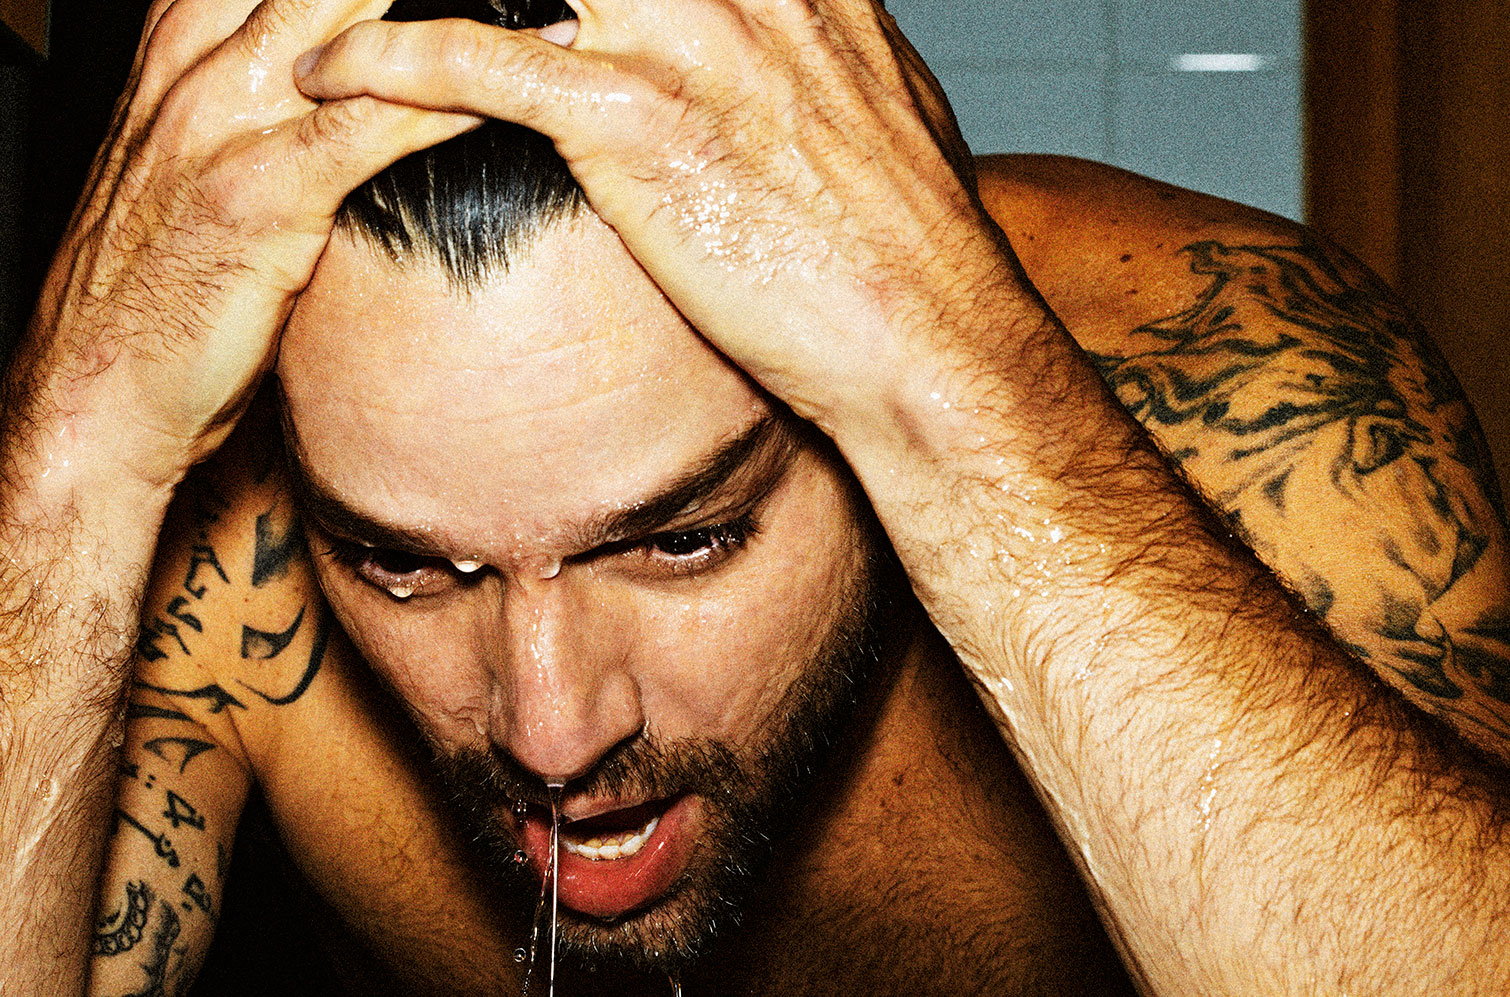 RICKY MARTIN FOR EL PAIS